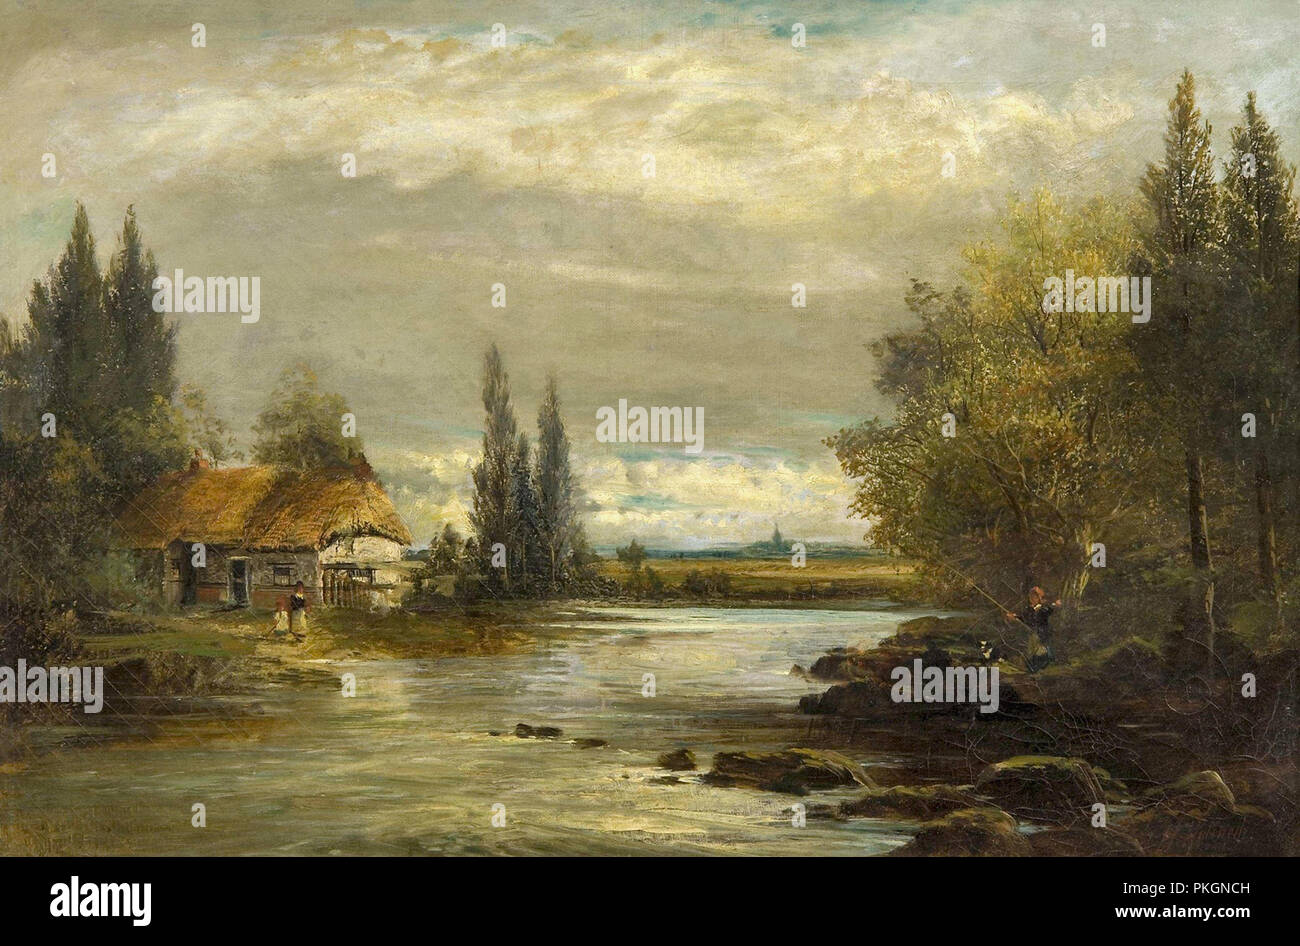 fc89acf6b70b Halswelle Keeley - River Landscape with Cottage and Figures Stock ...